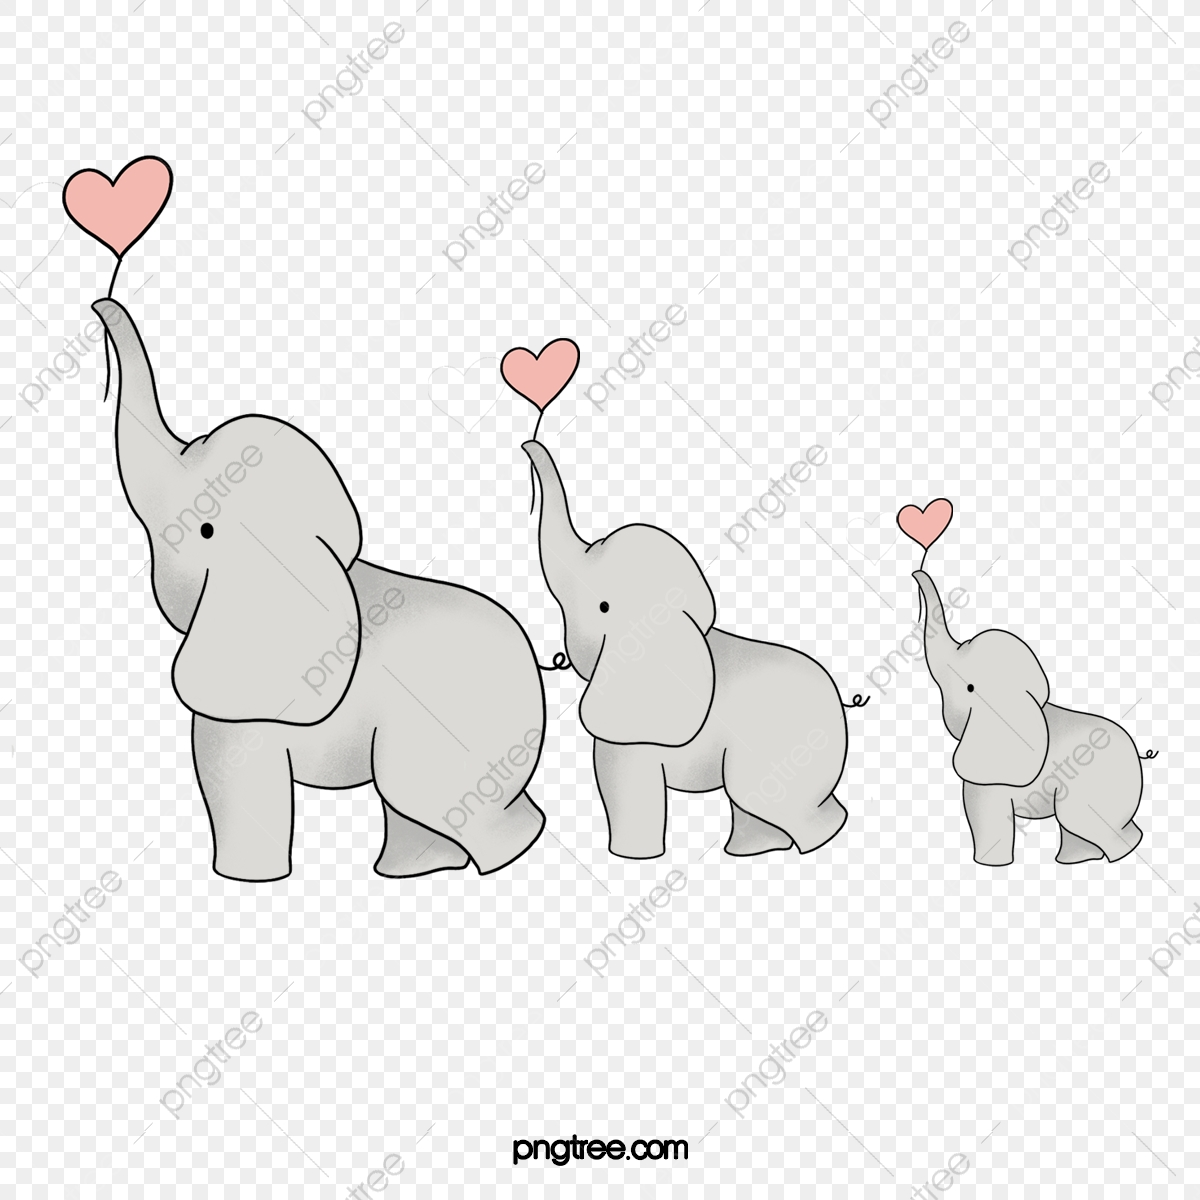 Elephant Vector, Elephant Clipart, Lovely, Elephant PNG Transparent.